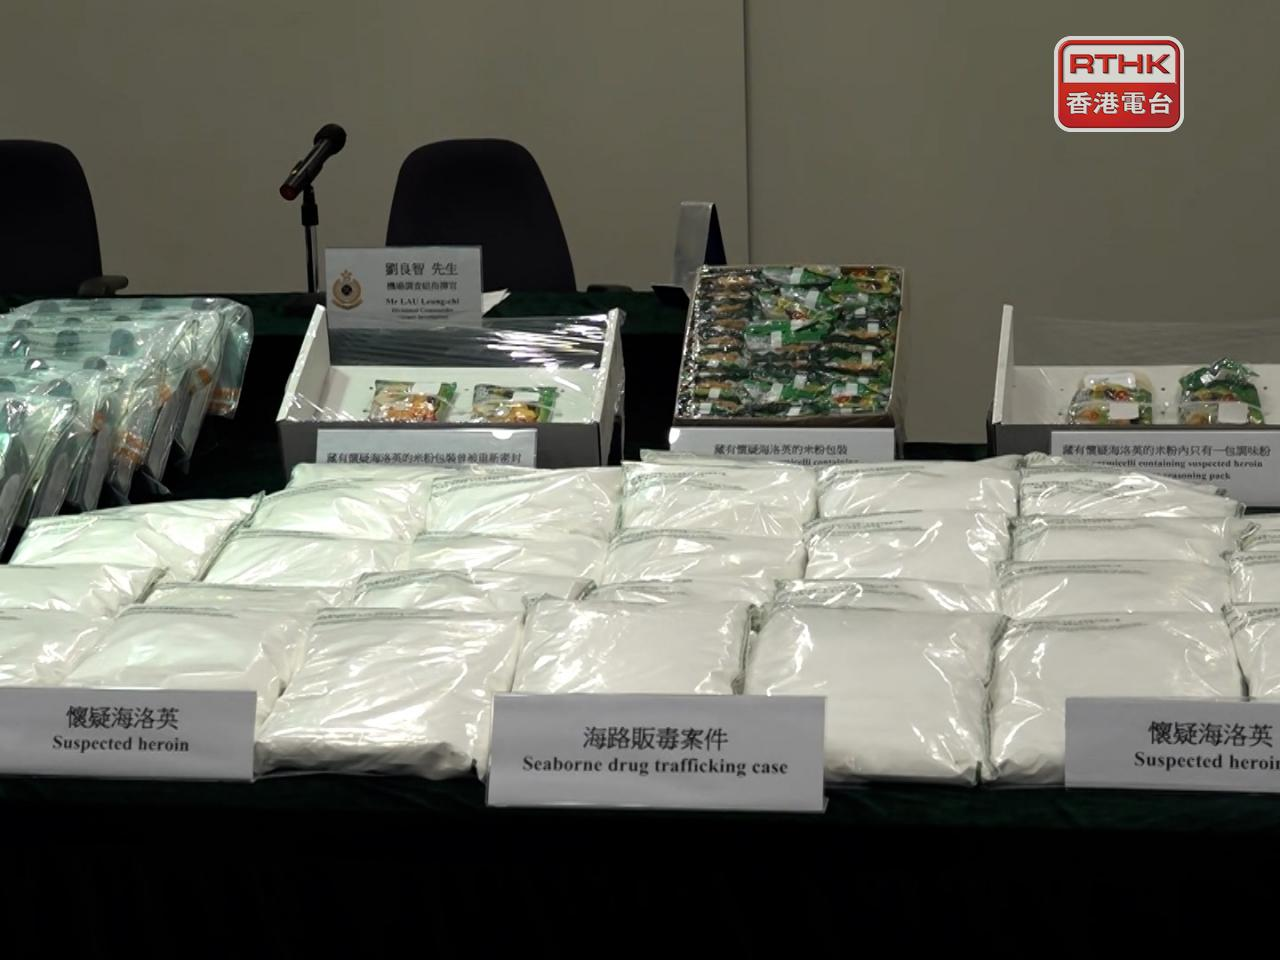 The heroin was found hidden in instant rice vermicelli seasoning packets. Photo: RTHK